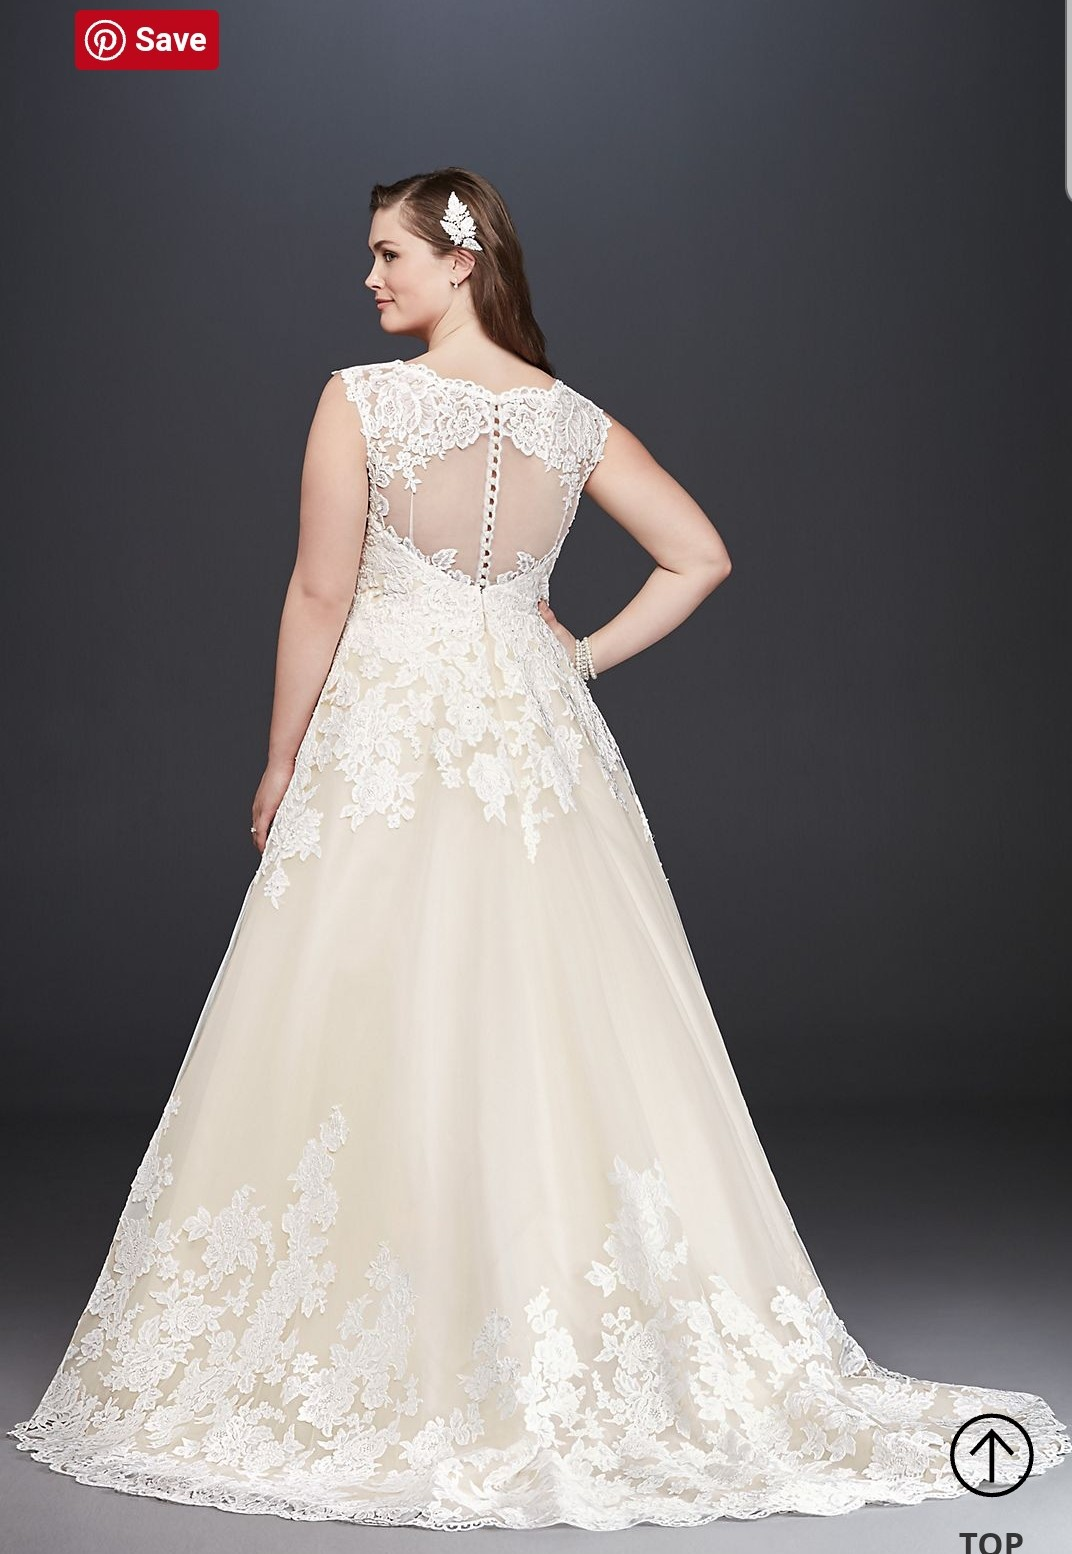 David\'s Bridal Collection Scalloped Lace and Tulle Plus Size Wedding Dress  9 Wedding Dress On Sale - 40% Off